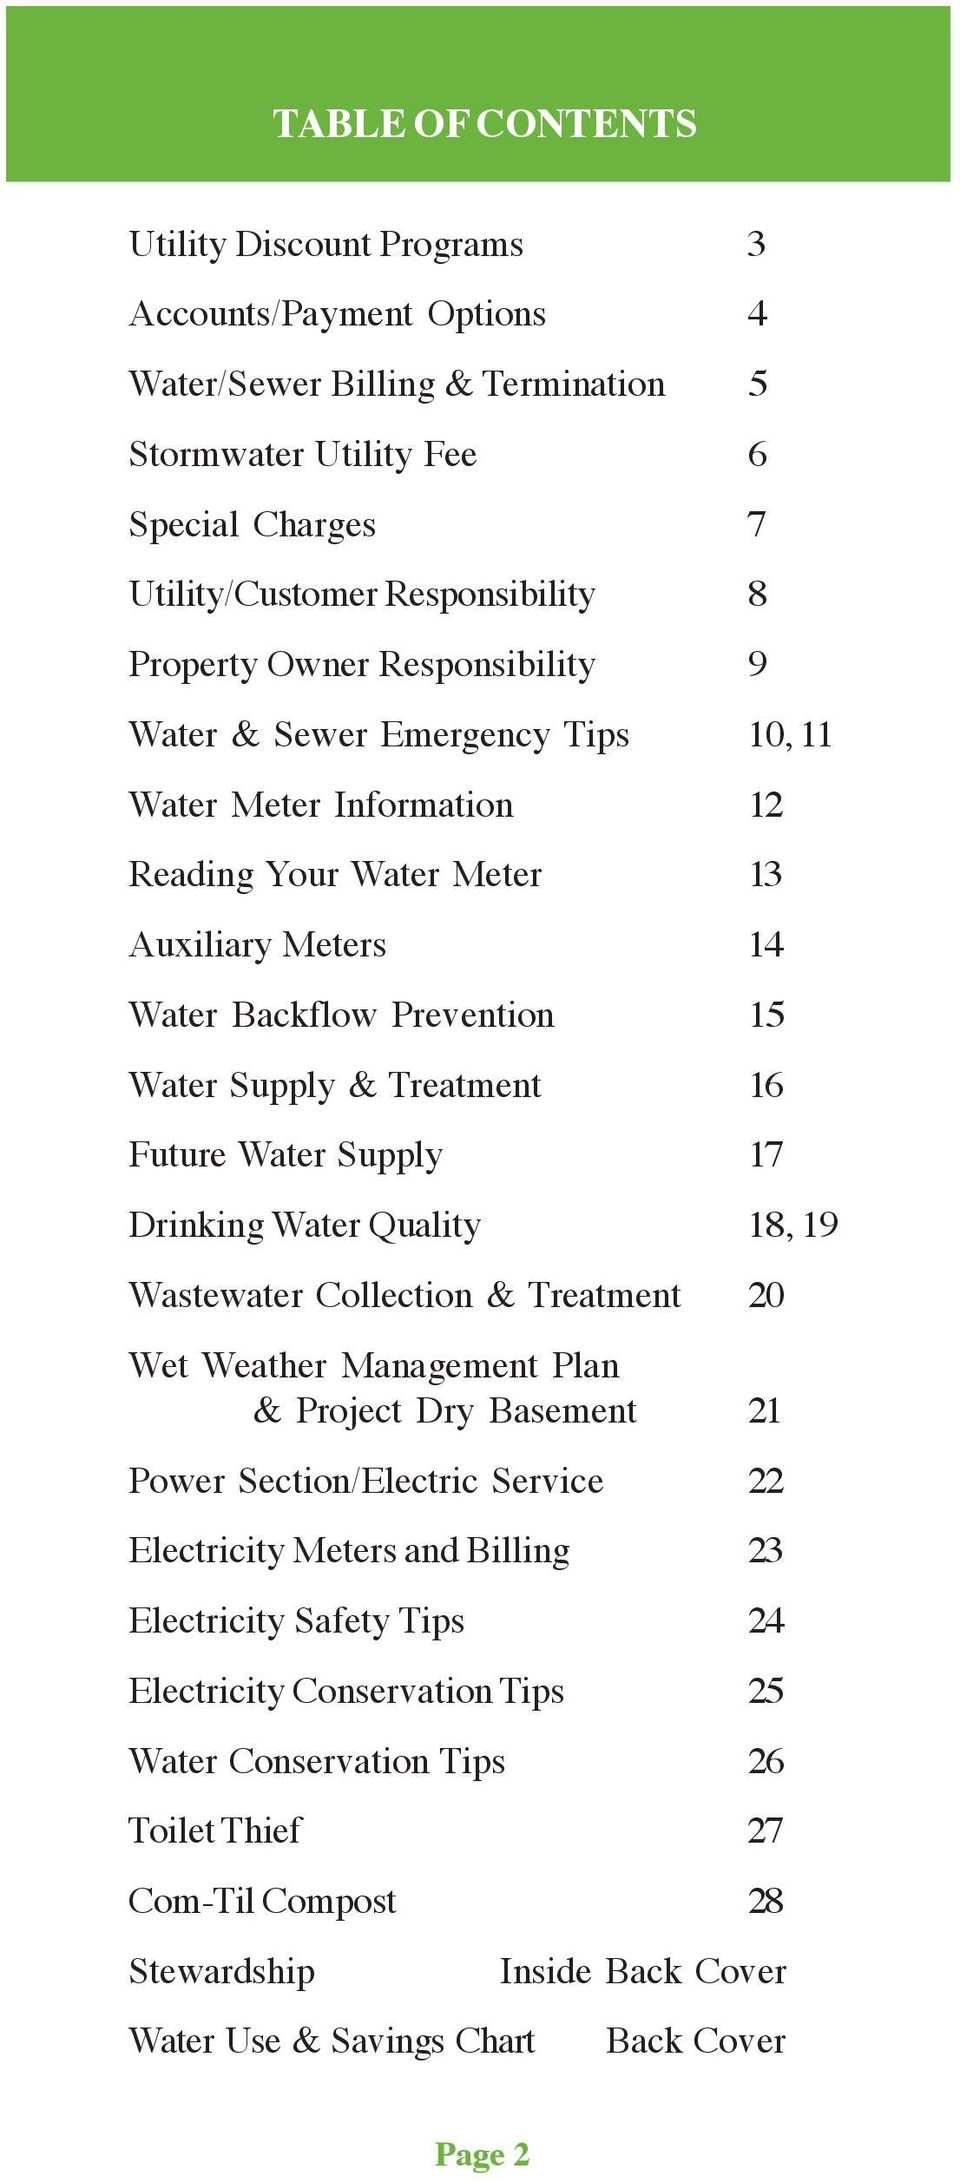 Water Supply 17 Drinking Water Quality 18, 19 Wastewater Collection & Treatment 20 Wet Weather Management Plan & Project Dry Basement 21 Power Section/Electric Service 22 Electricity Meters and